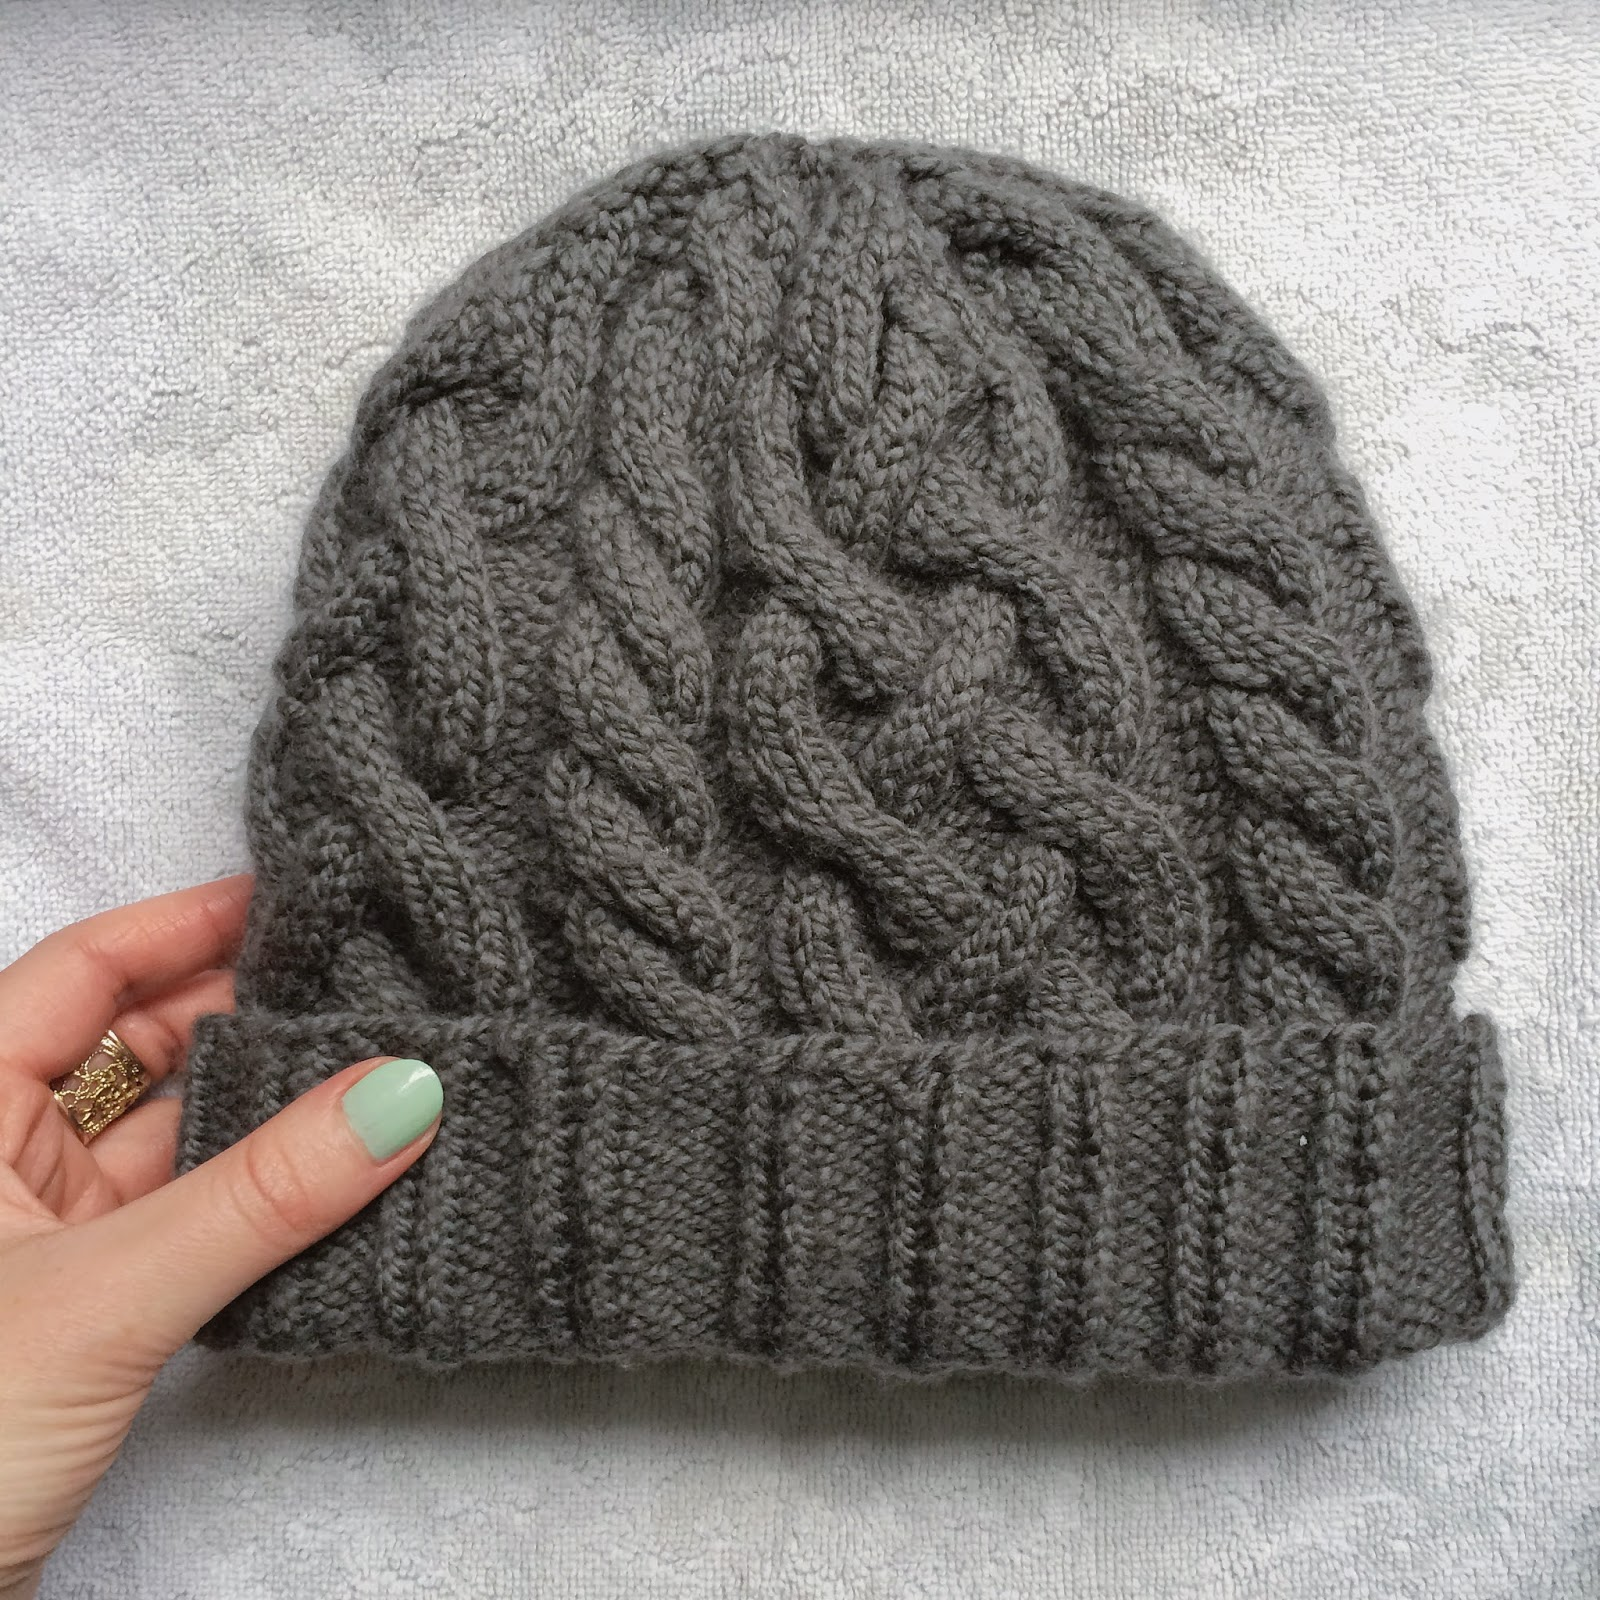 anna knits, etc.: anna knits - traveling cable hat